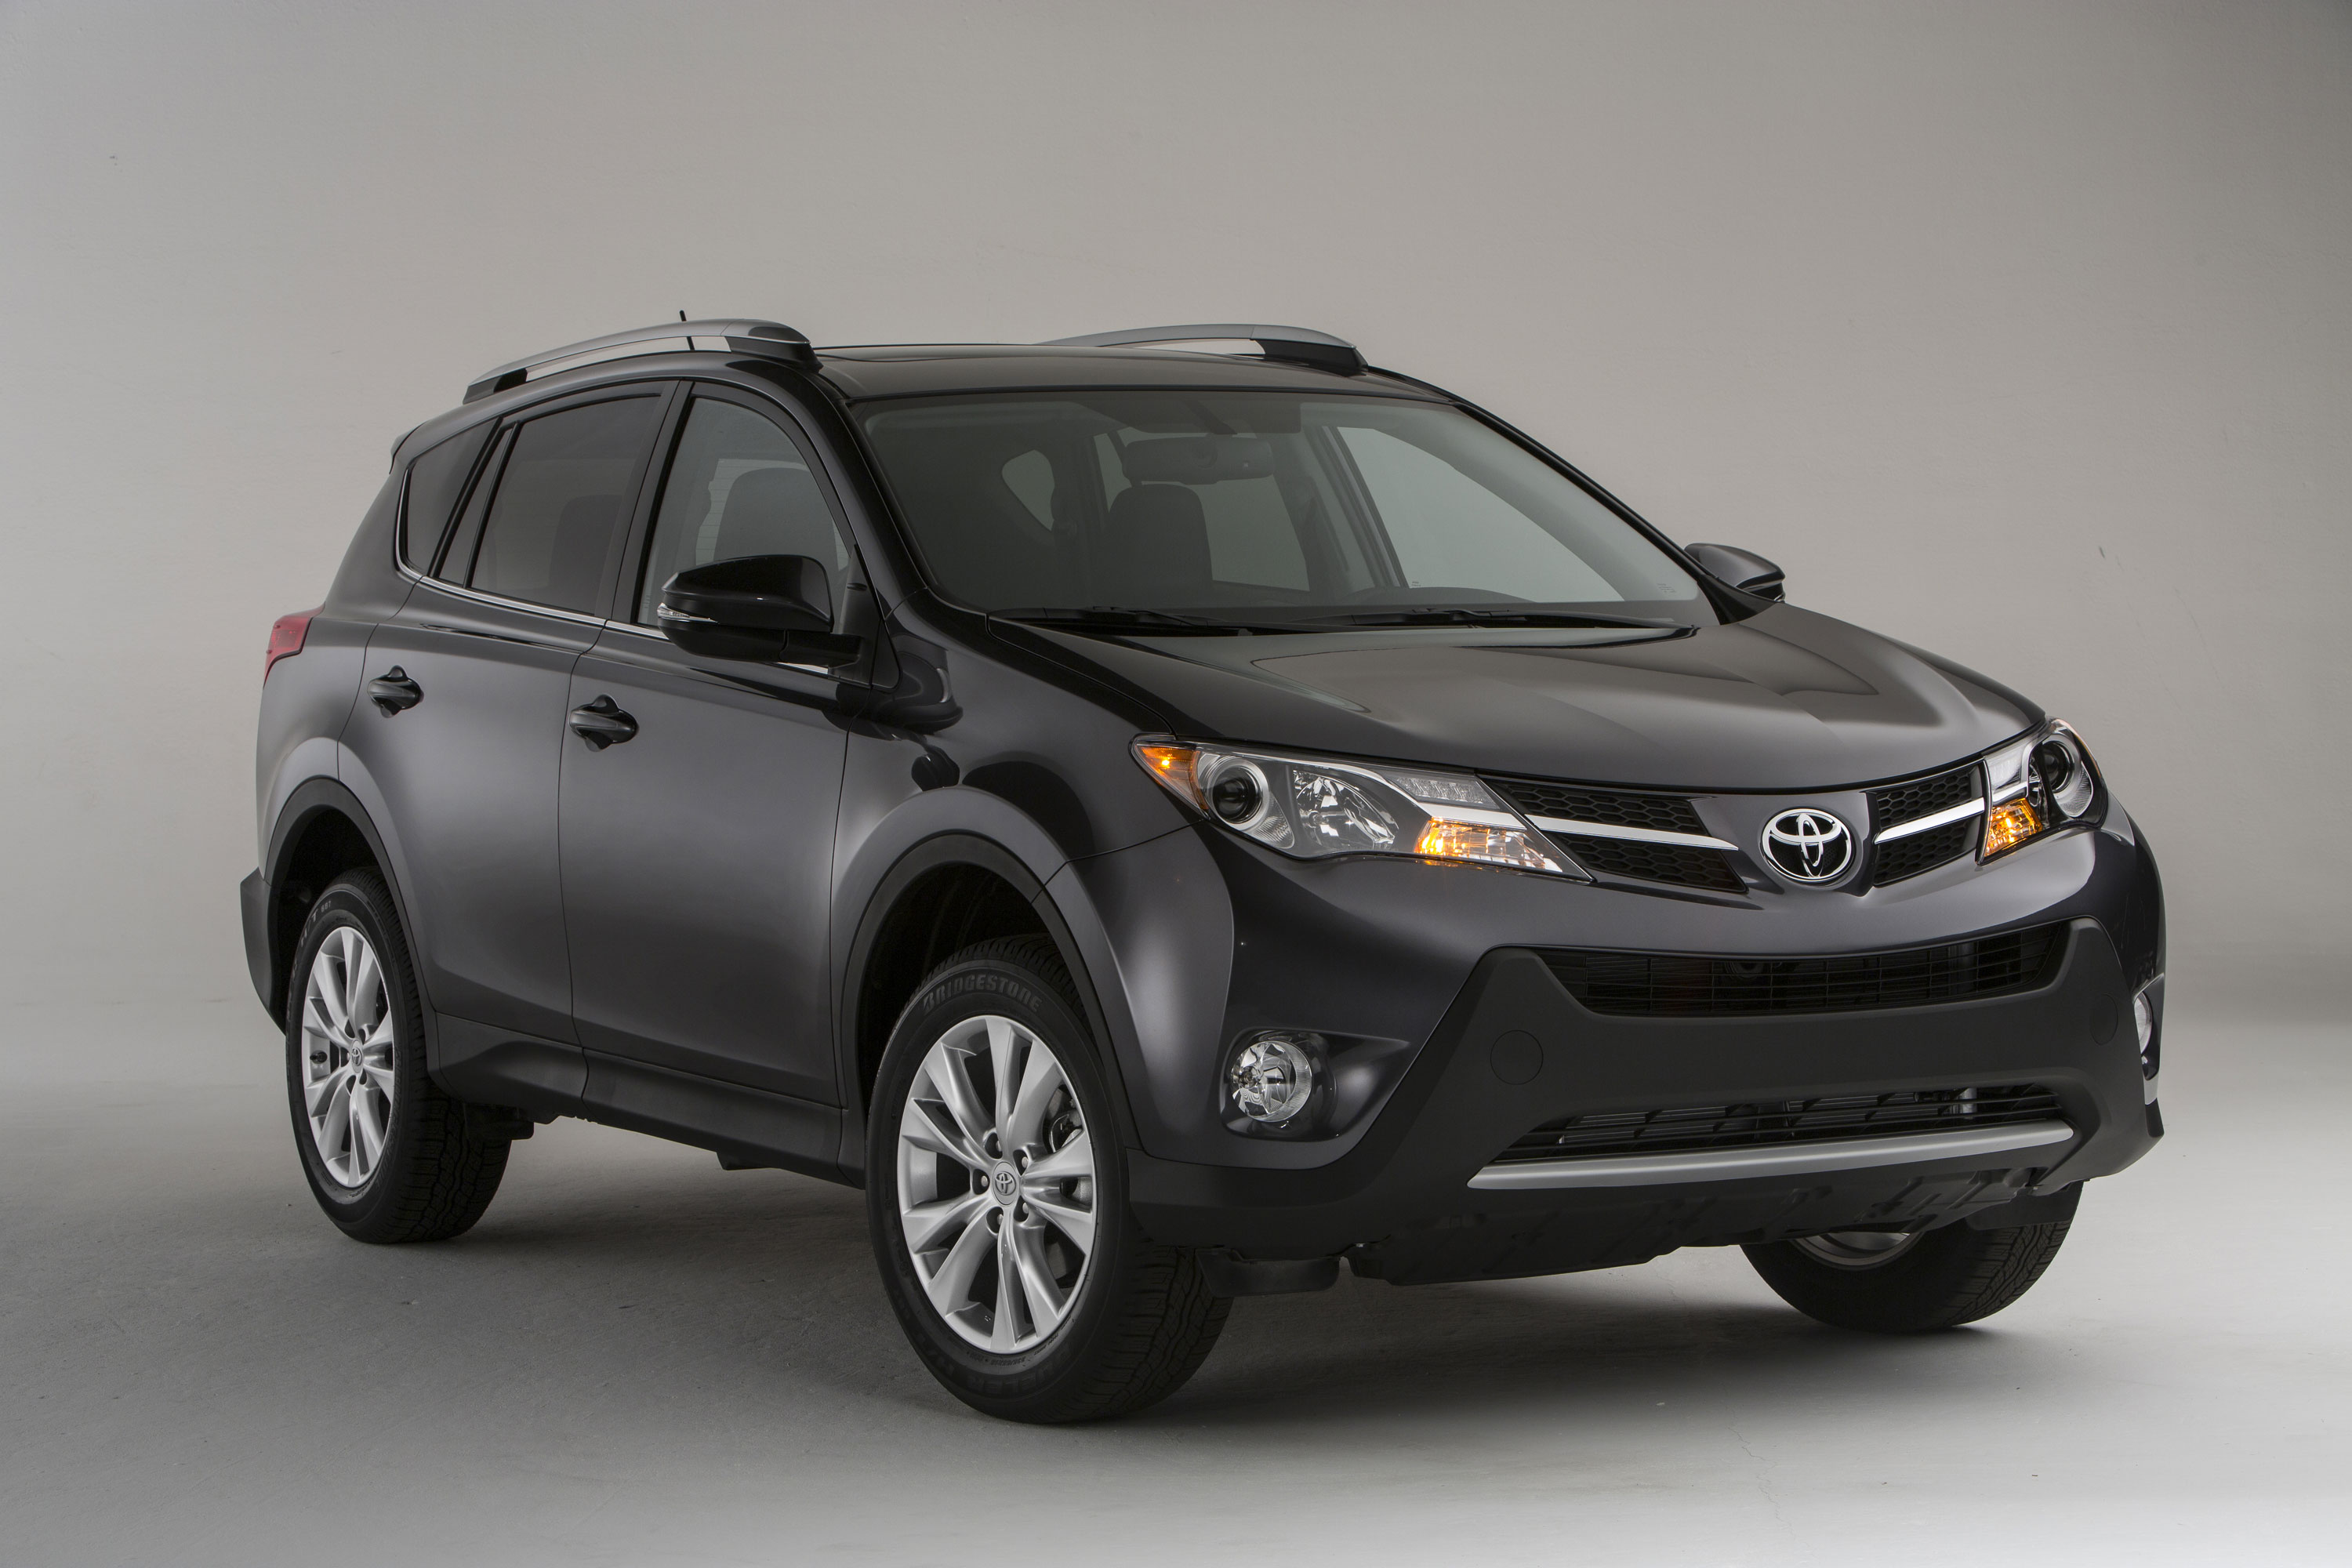 2014 Camry For Sale >> 2013 Toyota RAV4 | Top Speed